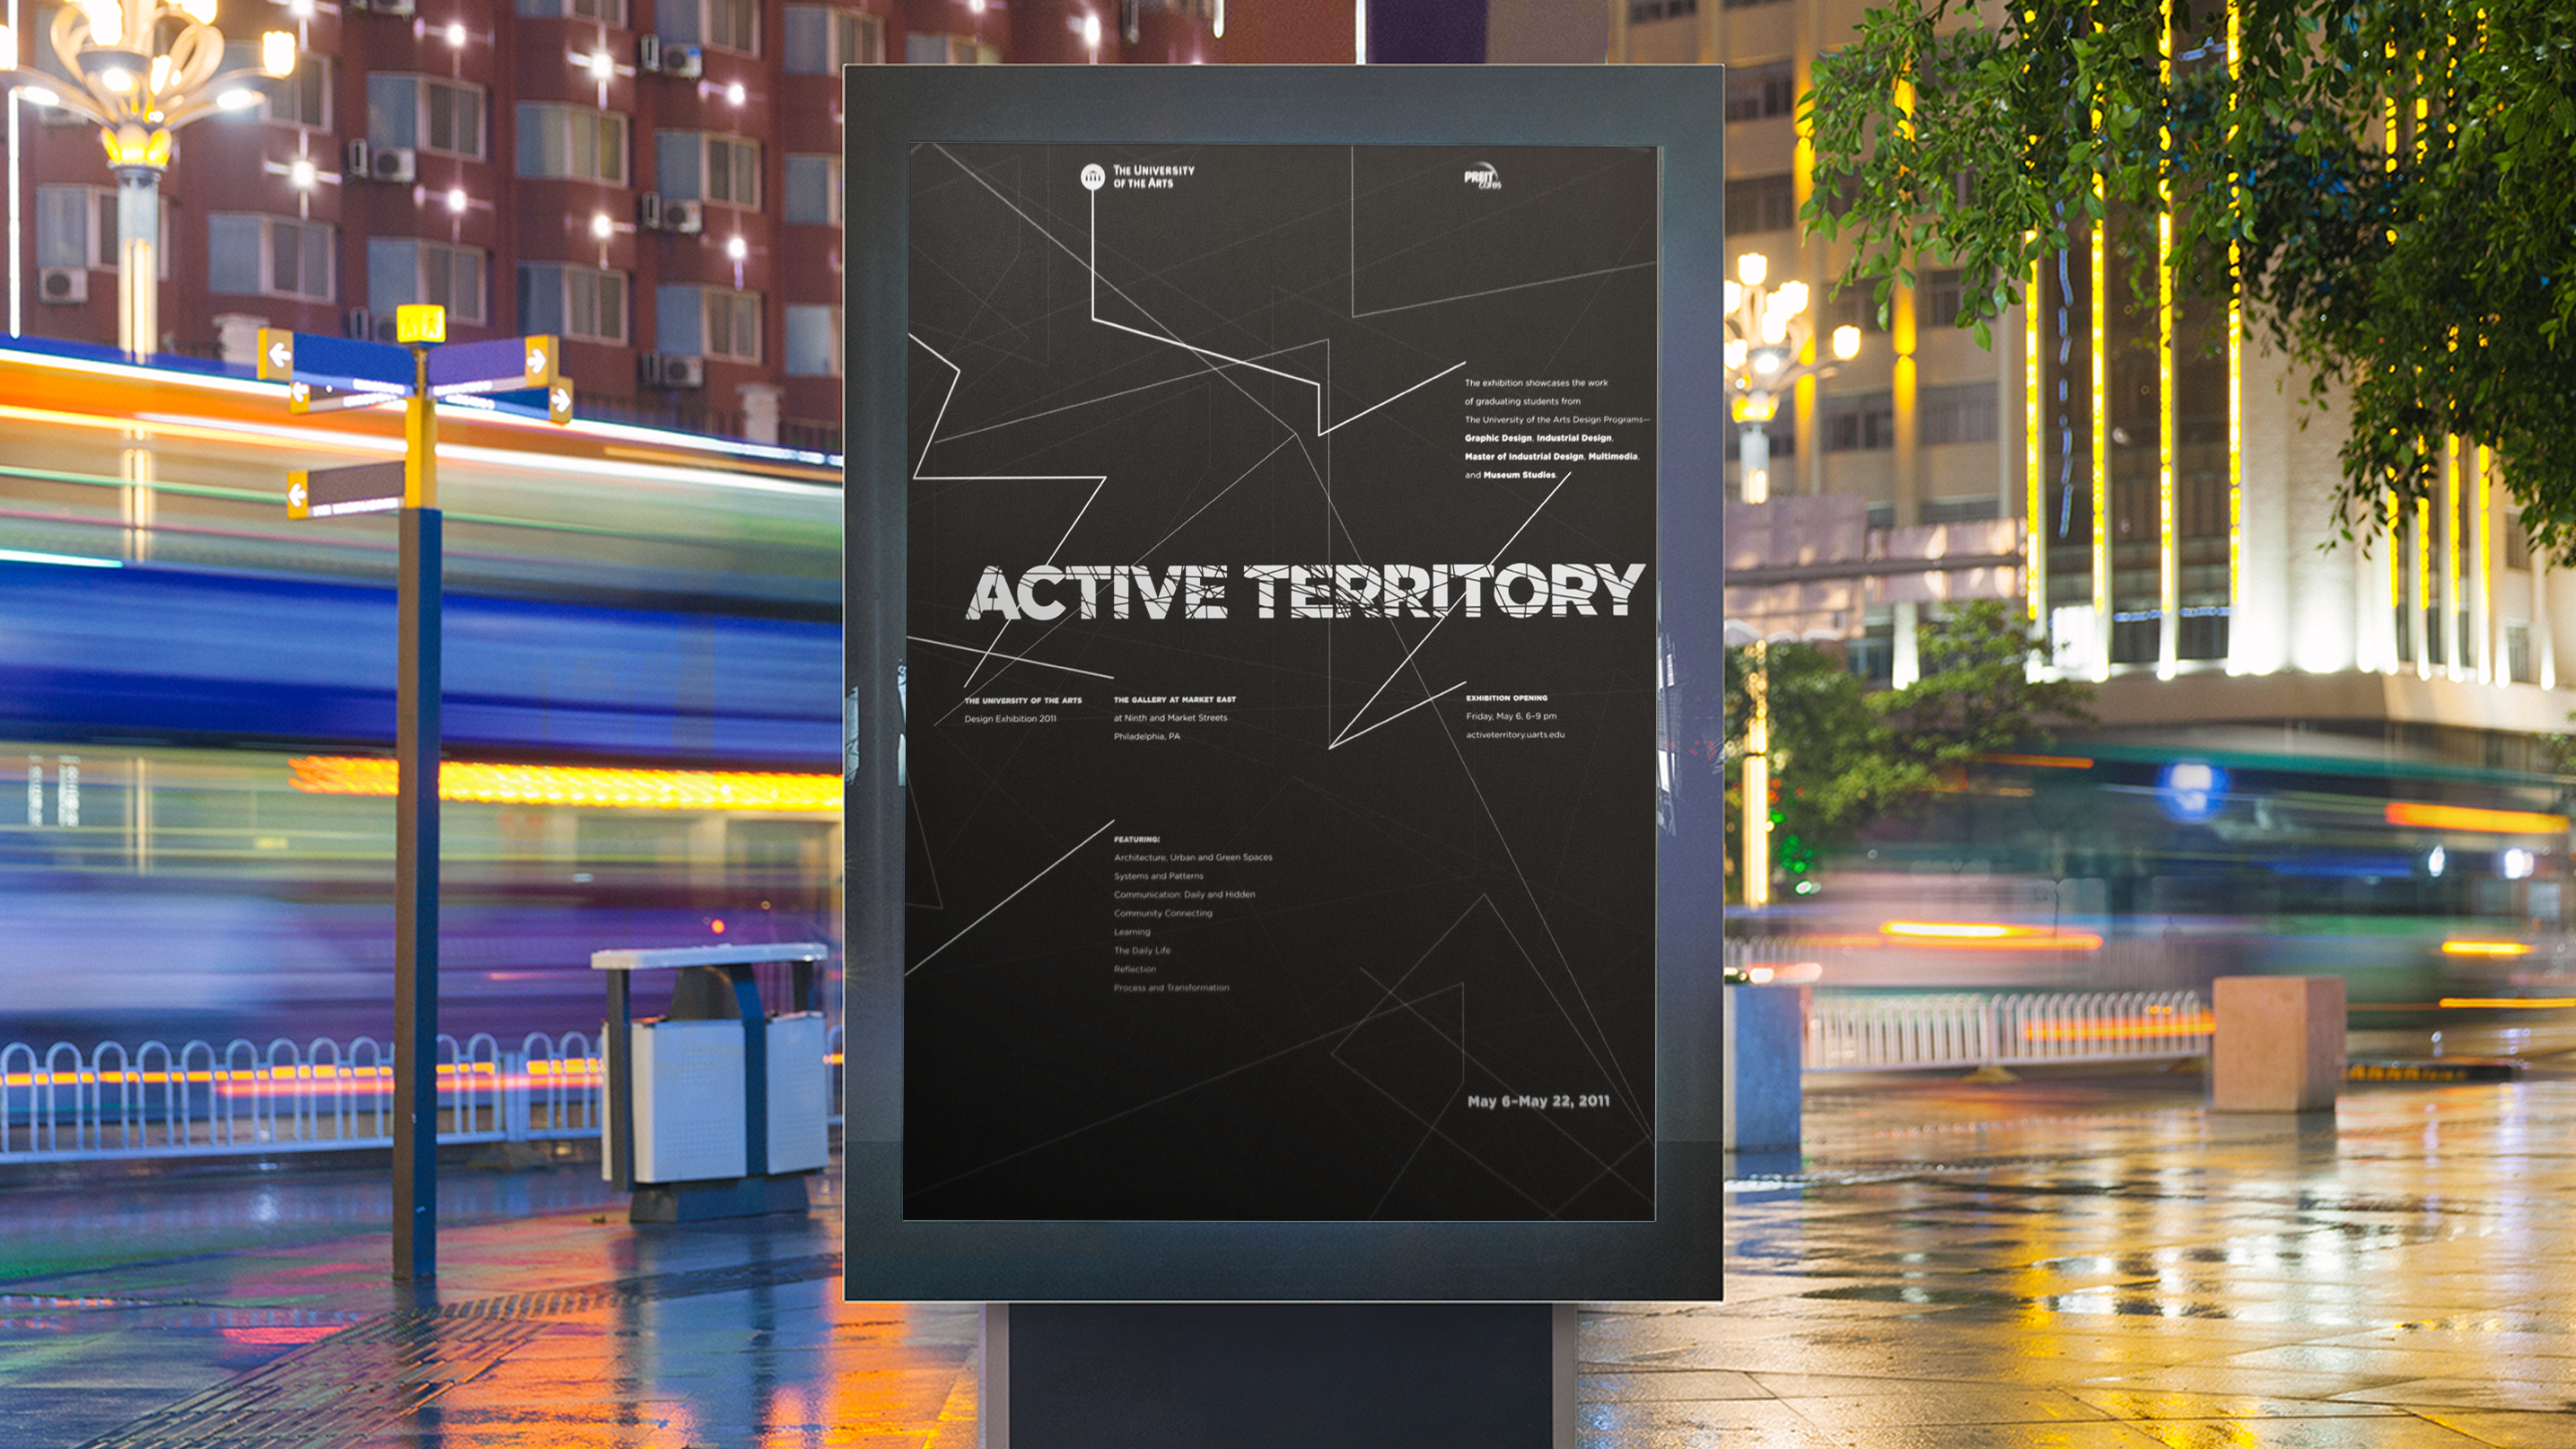 Active_Territory_image_thumb_template